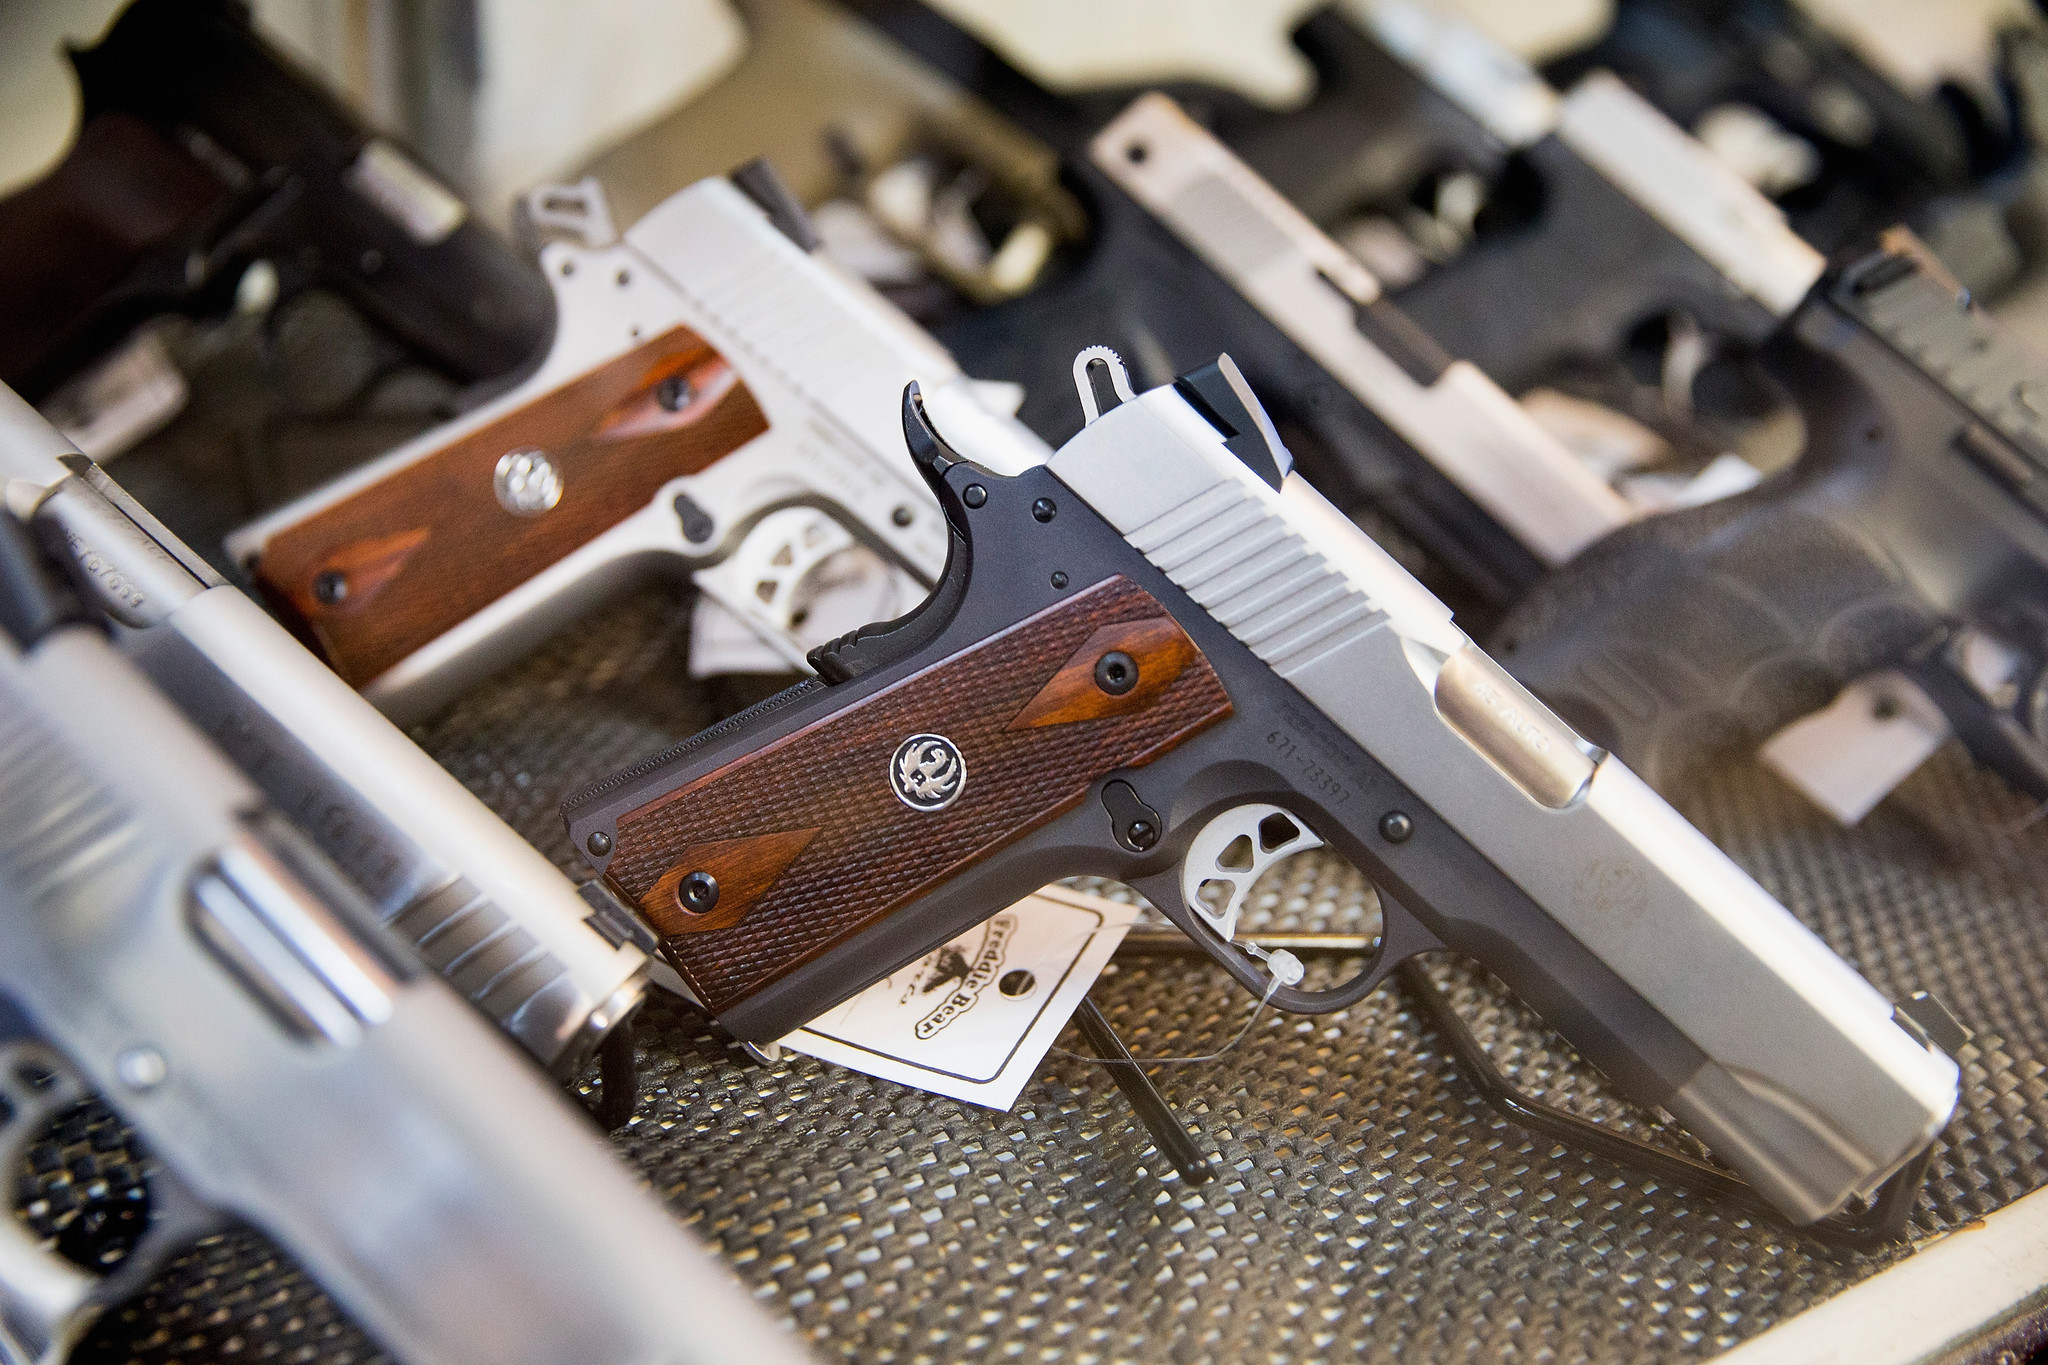 Does owning a gun make you safer?